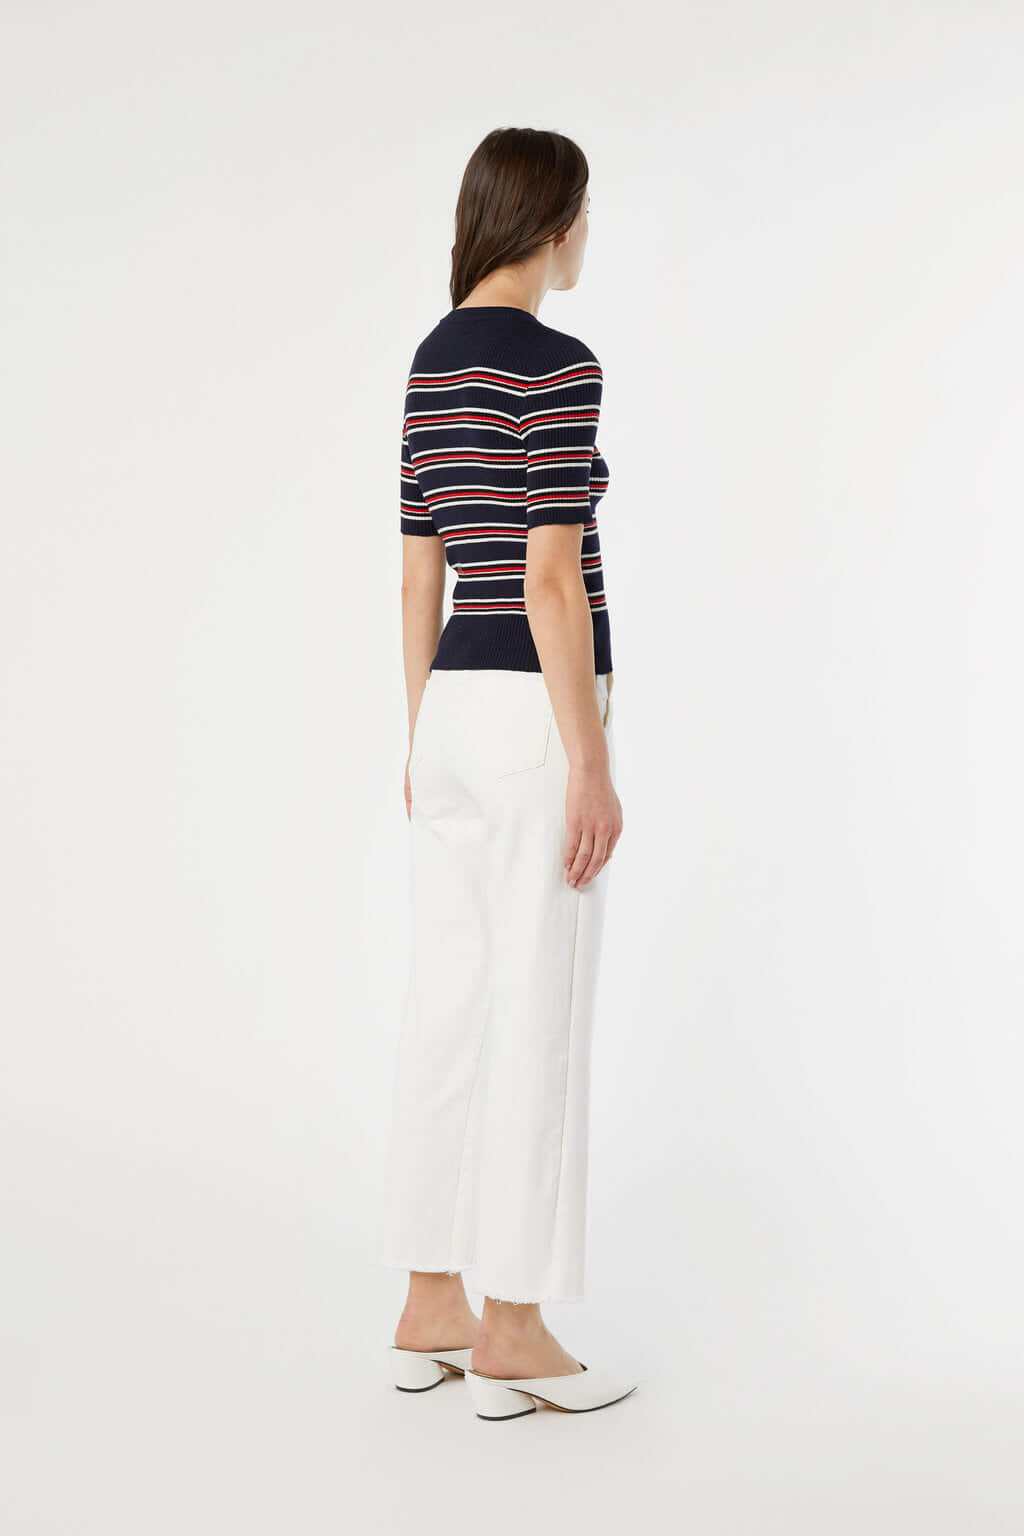 TShirt 3611 Red Blue Stripe 4